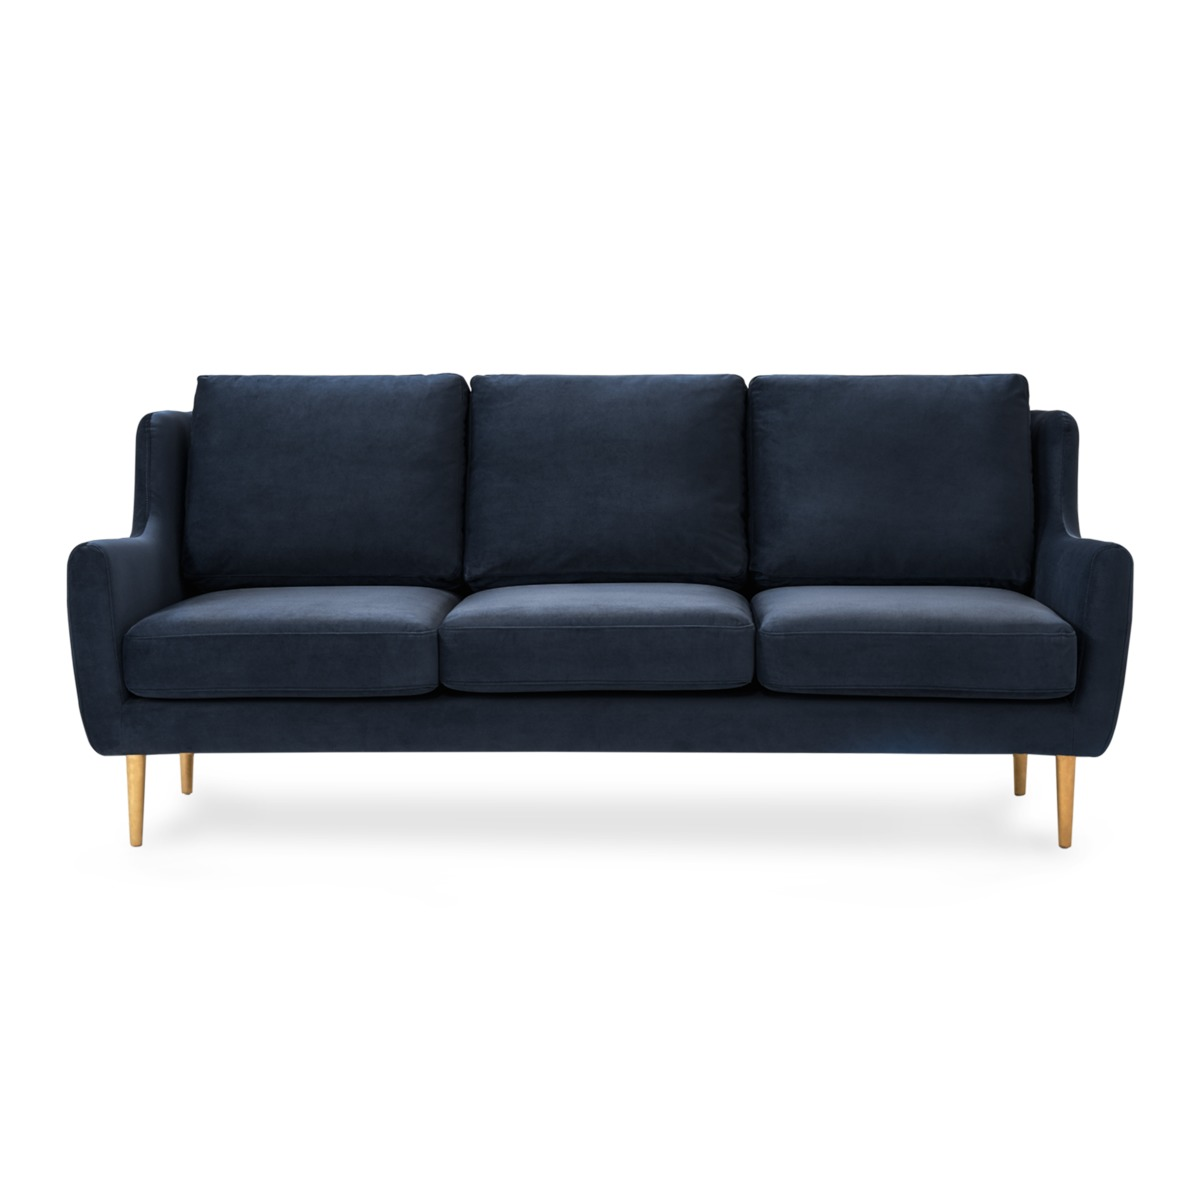 Adelphi 3 Seater Sofa, Midnight Blue Velvet